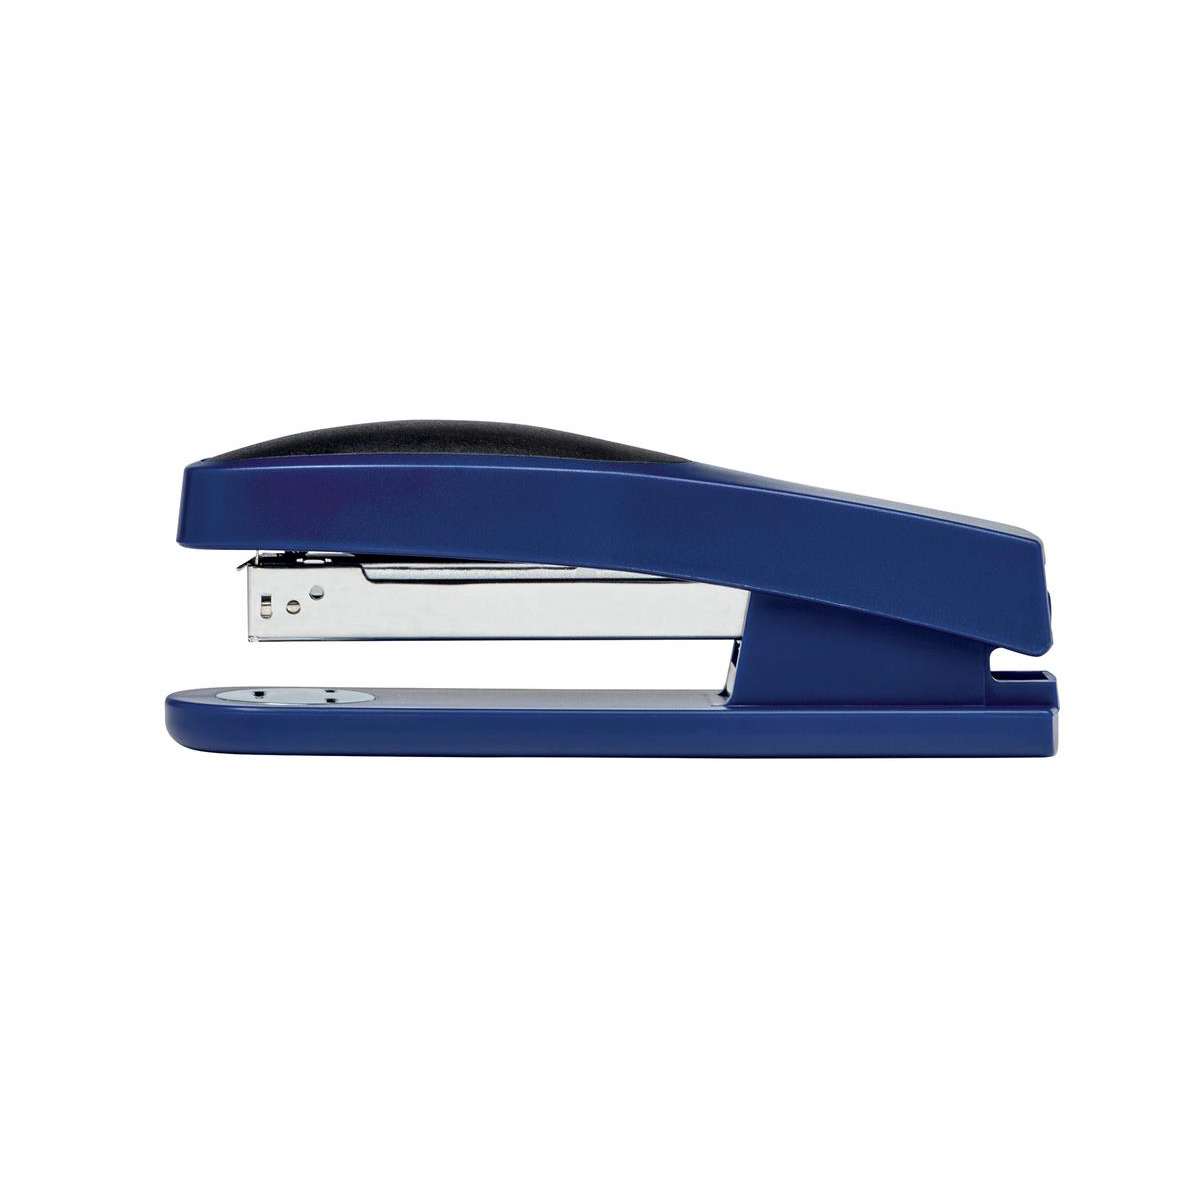 Long Arm Staplers 5 Star Office Stapler Full Strip Rubber Body Capacity 25 Sheets Blue